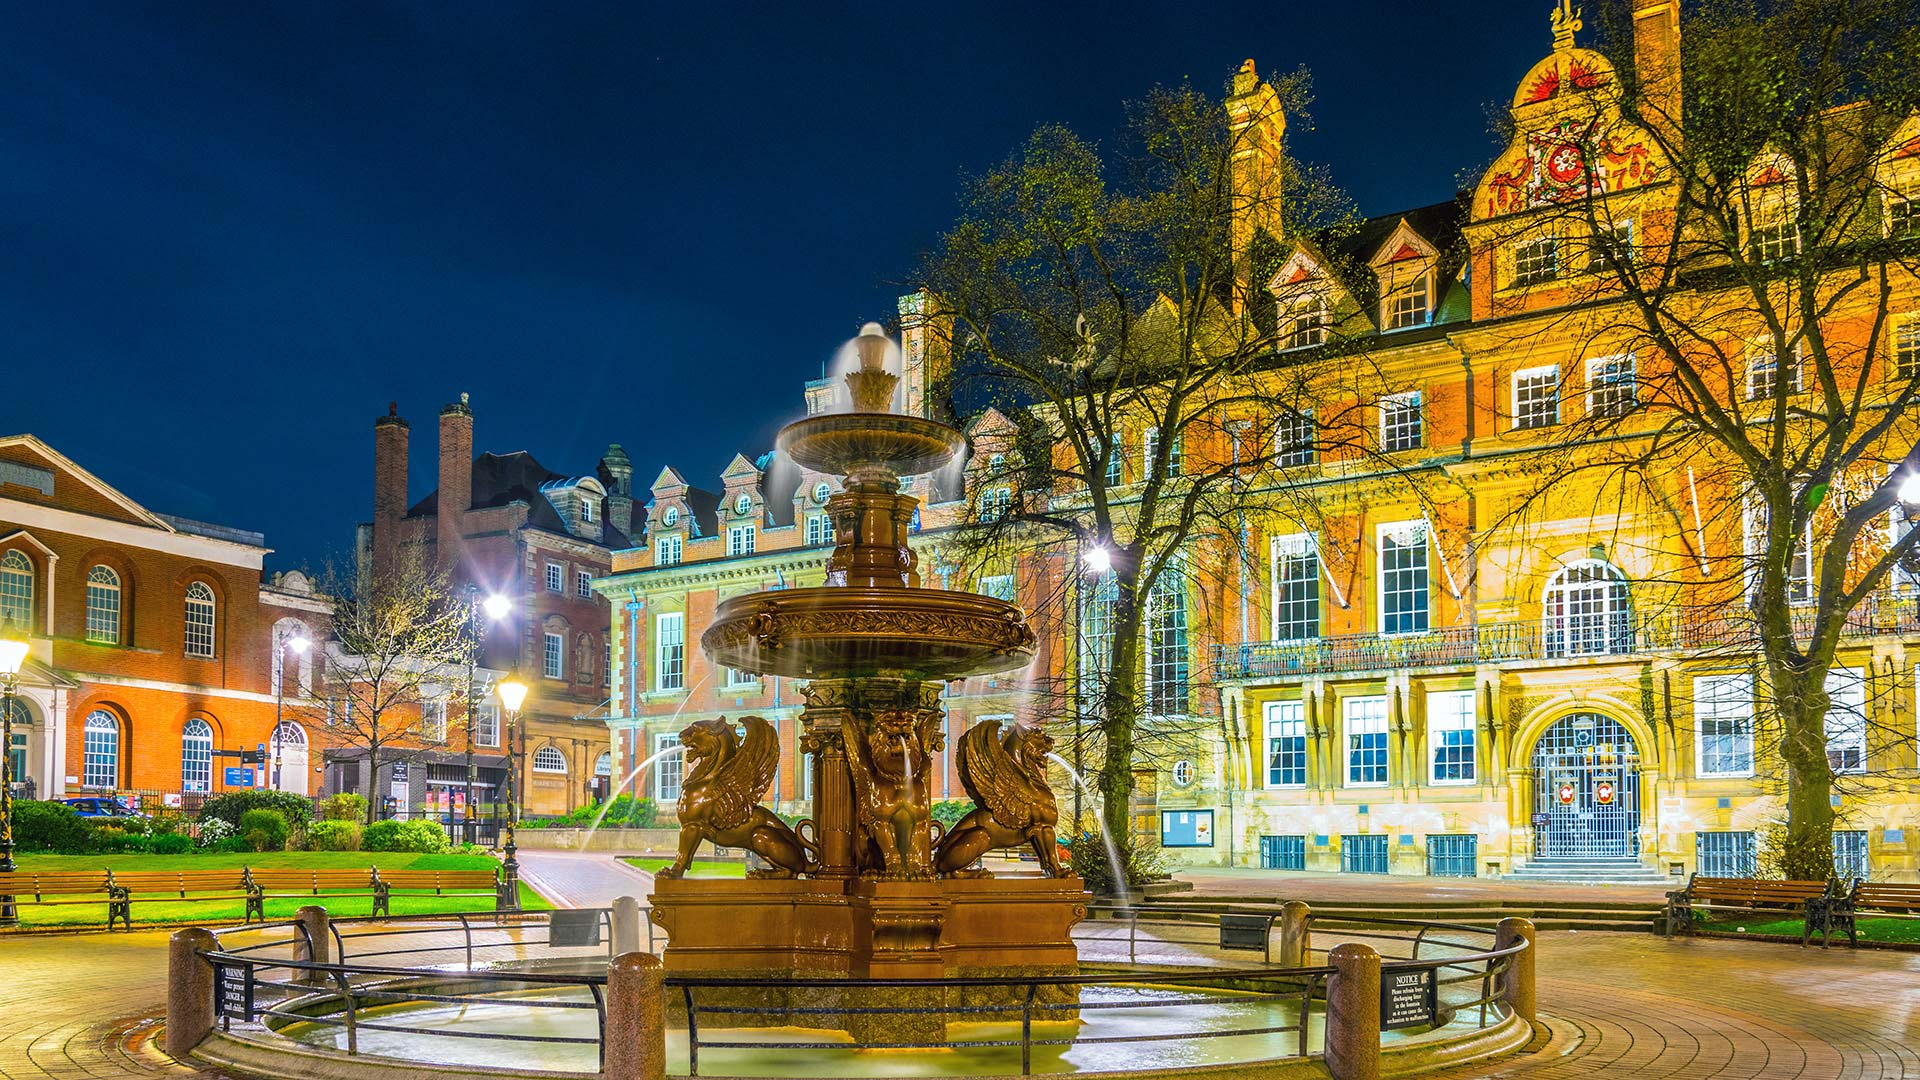 Panorama to illustrate dating in leicester